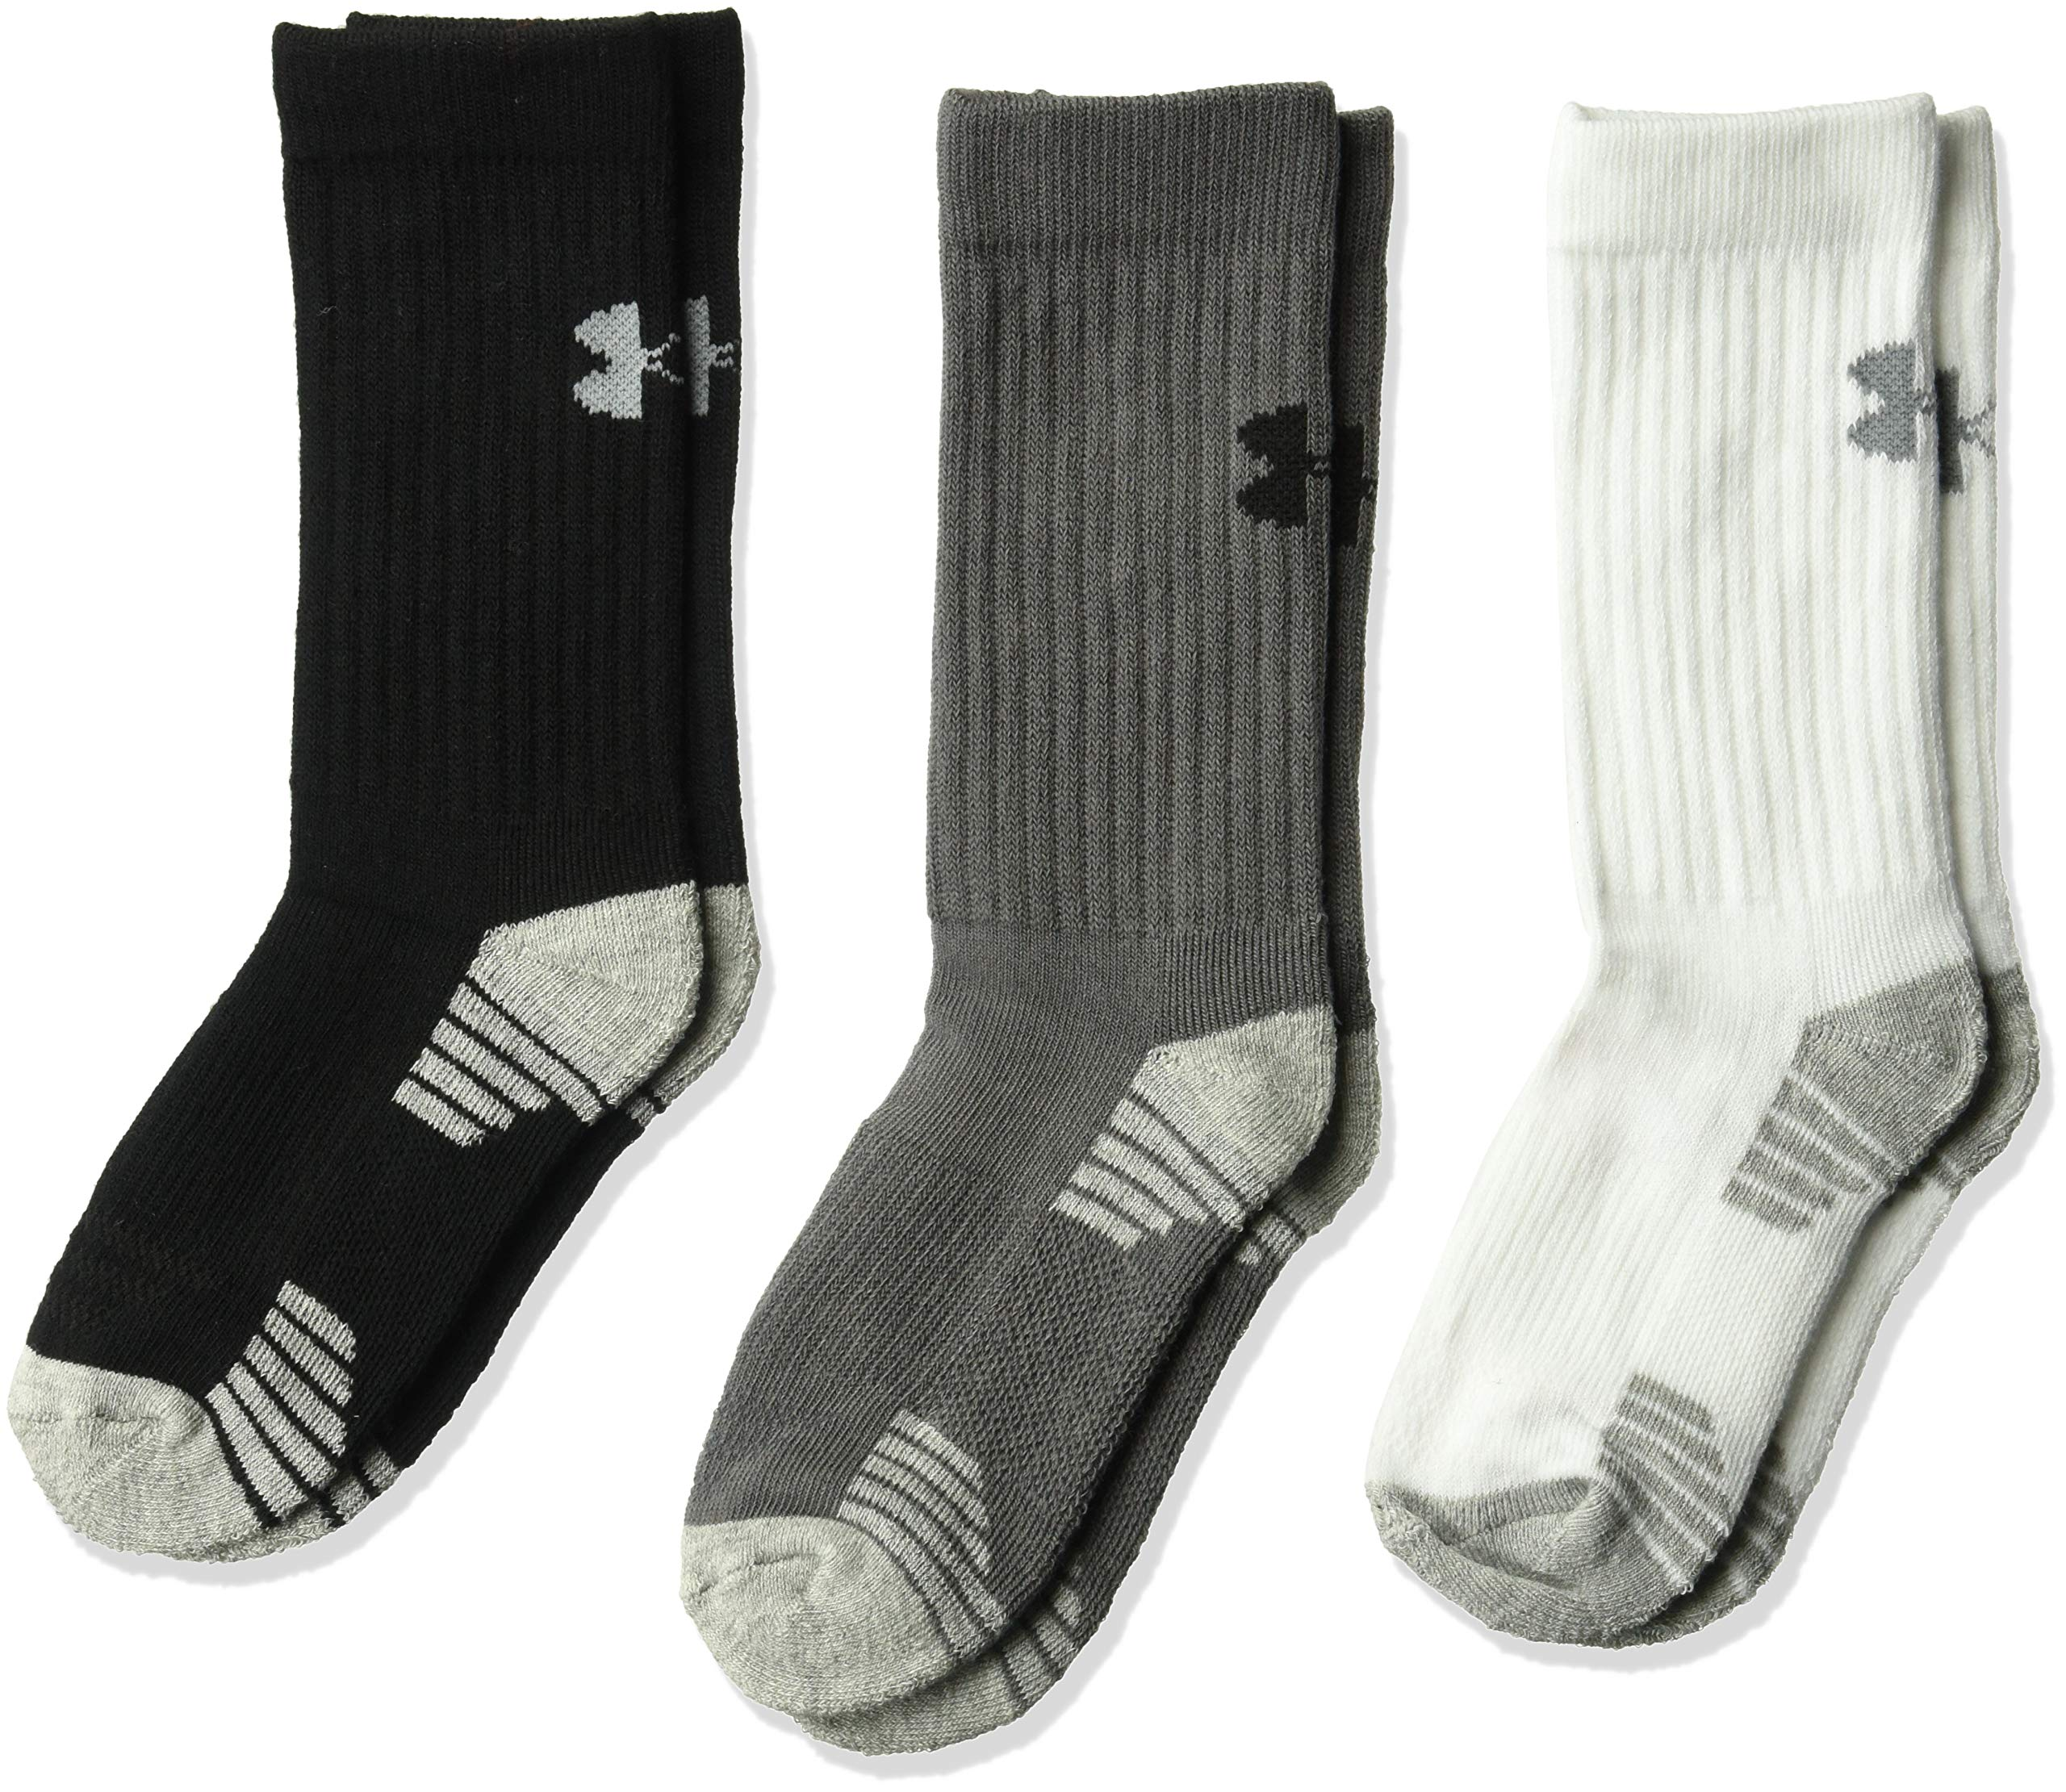 Boys Under Armour 3-Pack HeatGear Crew Socks ,Graphite Assortment (1303207-040) / Black/White/Grey,Small (Youth Shoe Size 13.5K-4Y)